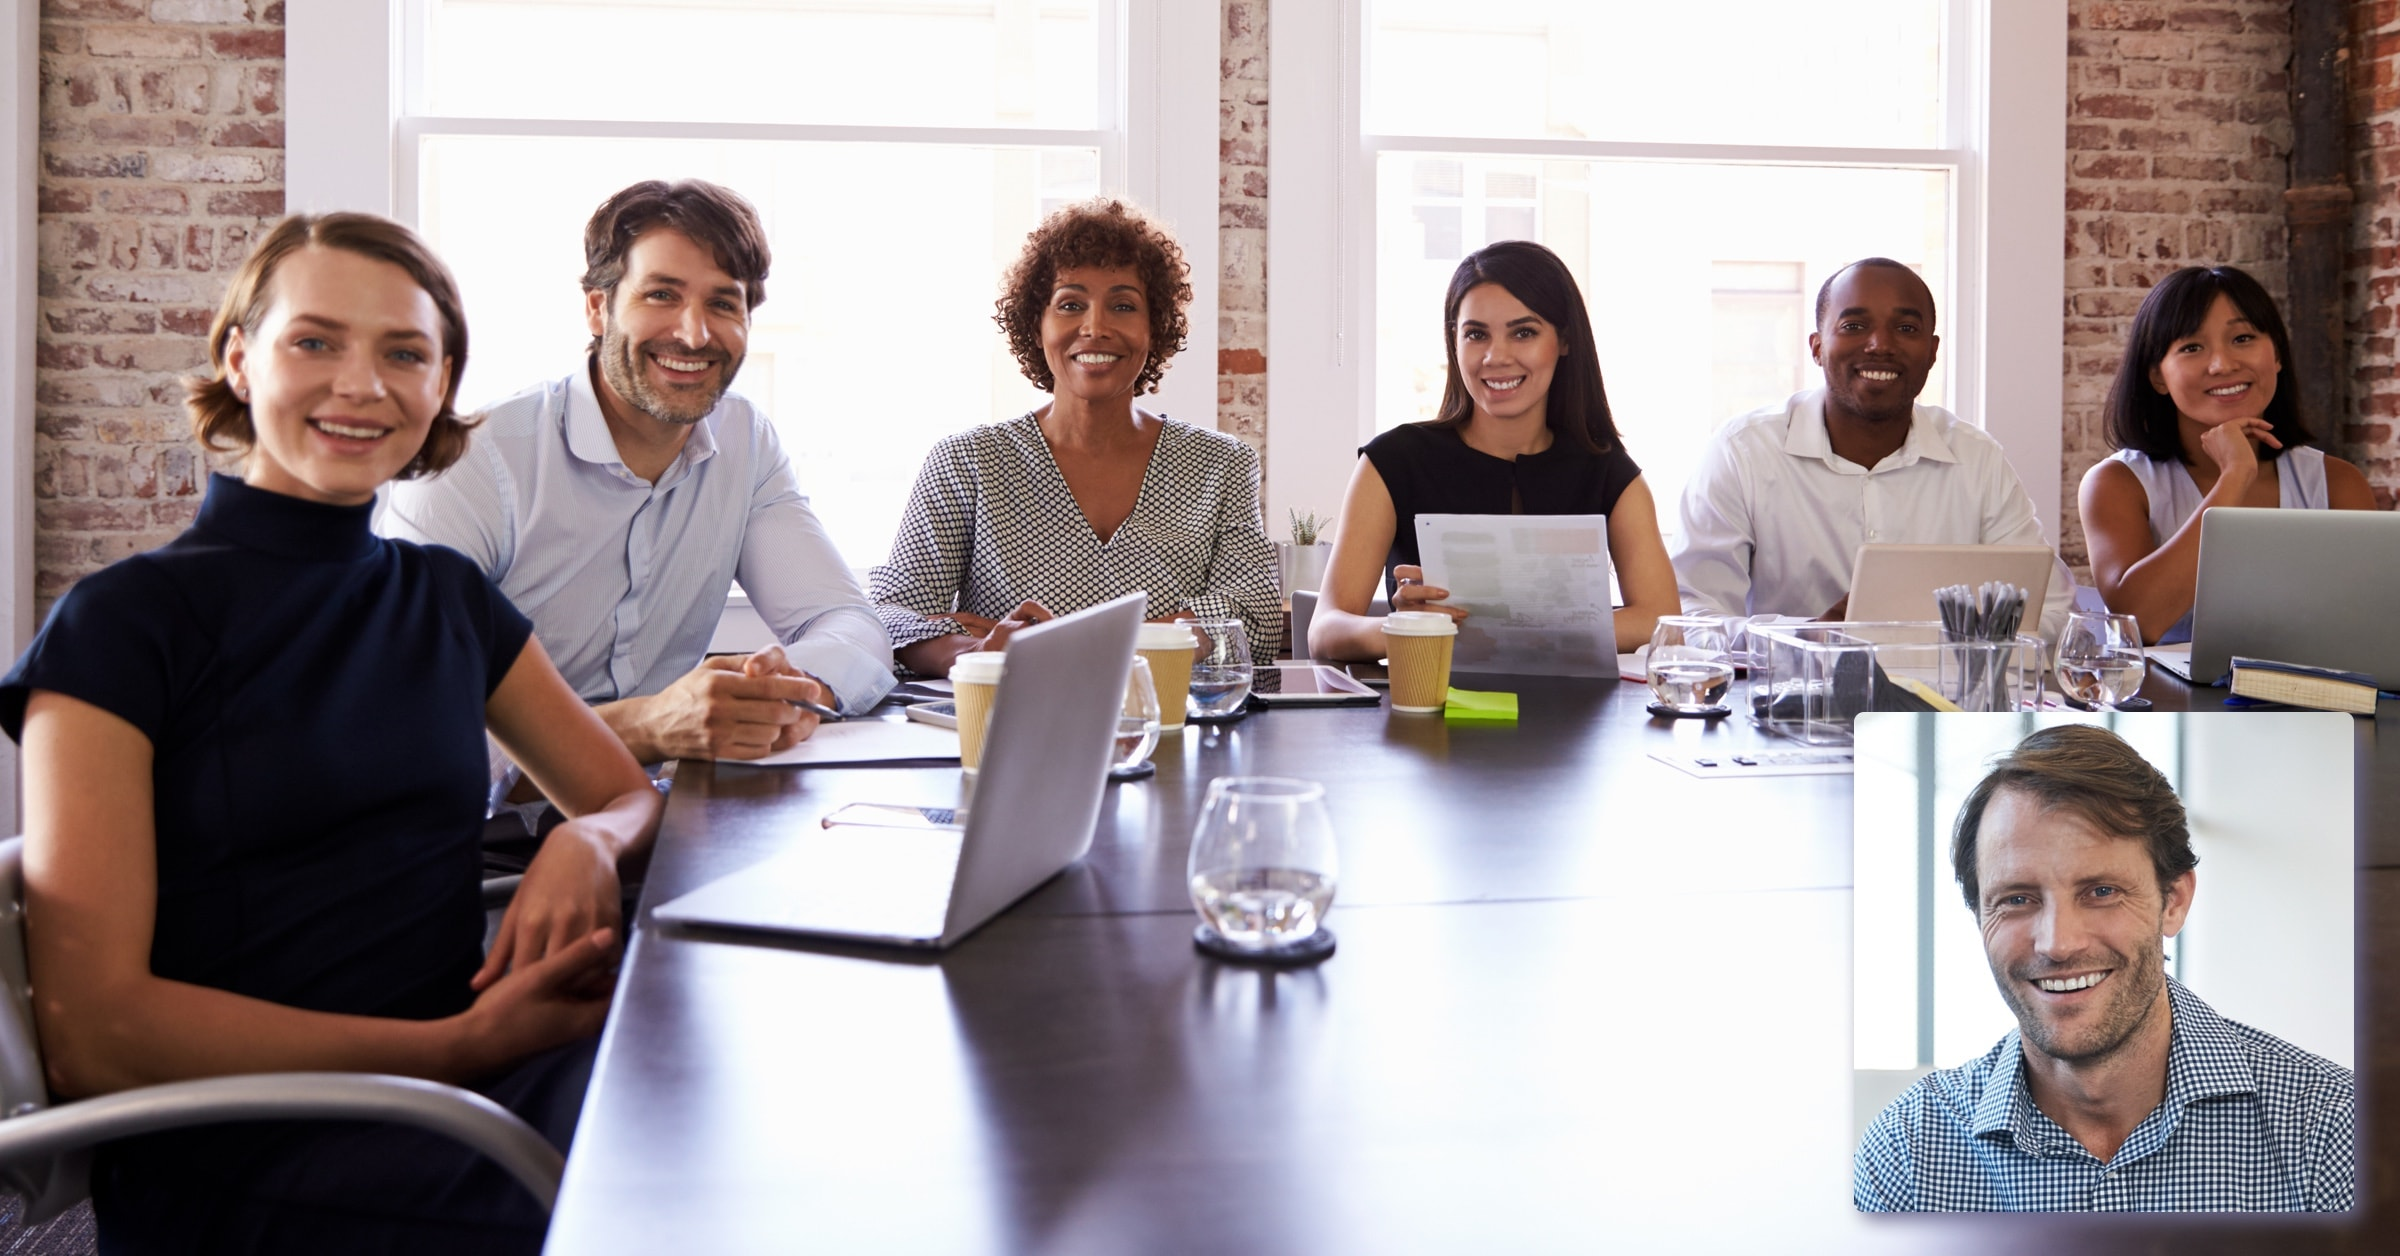 Board meetings are a critical part of strategic business decision-making, but they're often too unorganized to be effective. Here's how to make your next meeting a success.